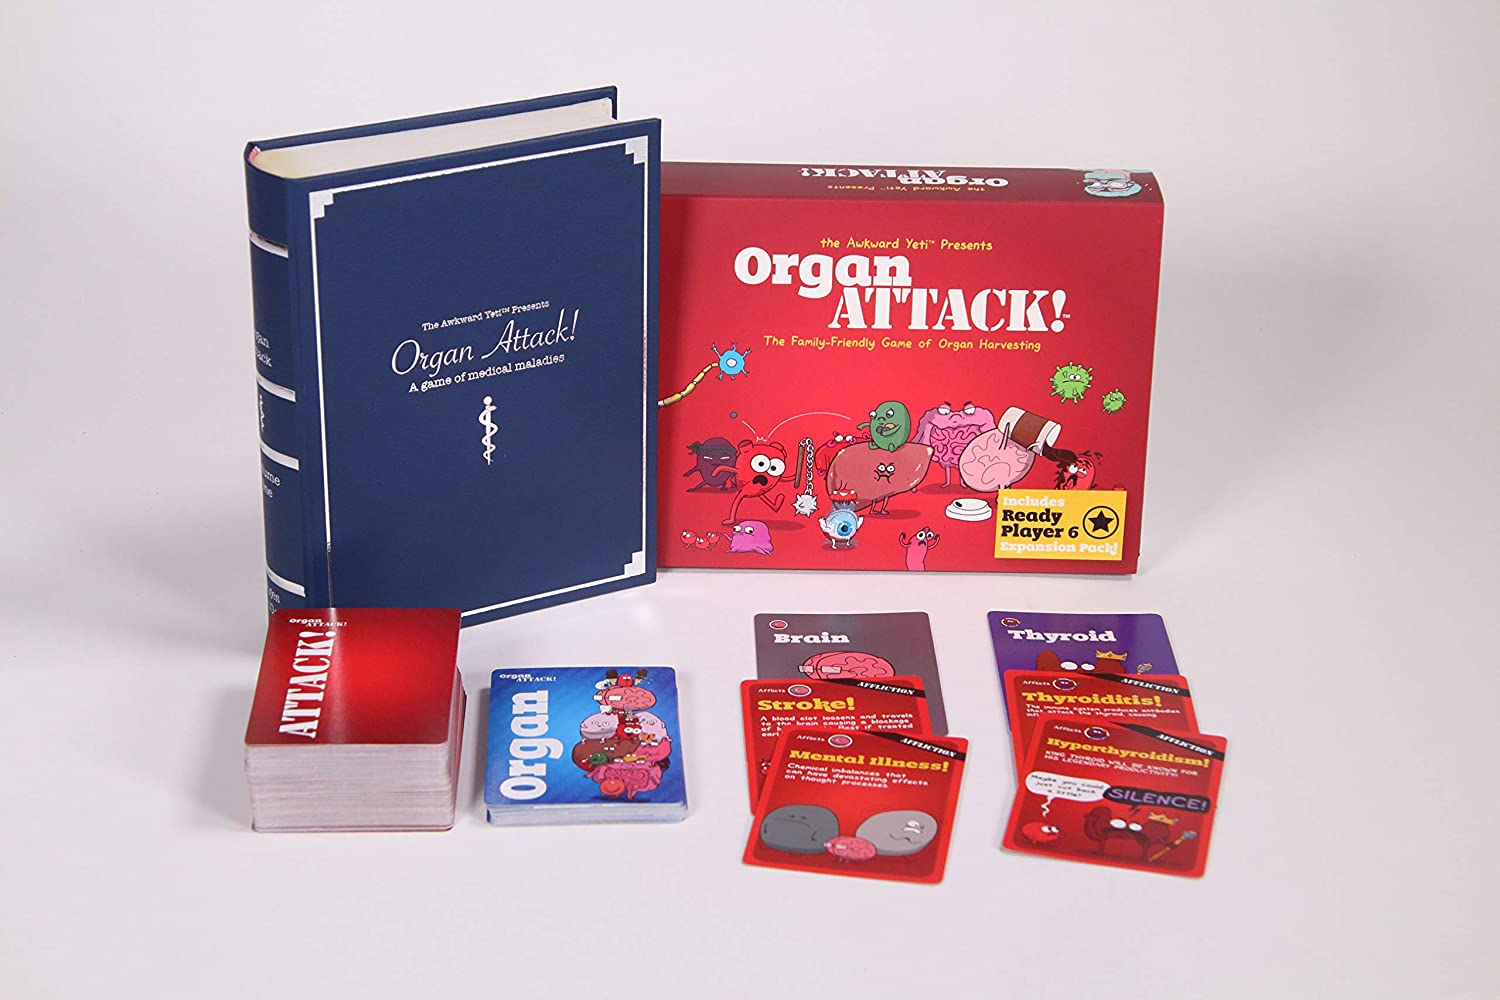 OrganATTACK! Tabletop Card Game by The Awkward Yeti